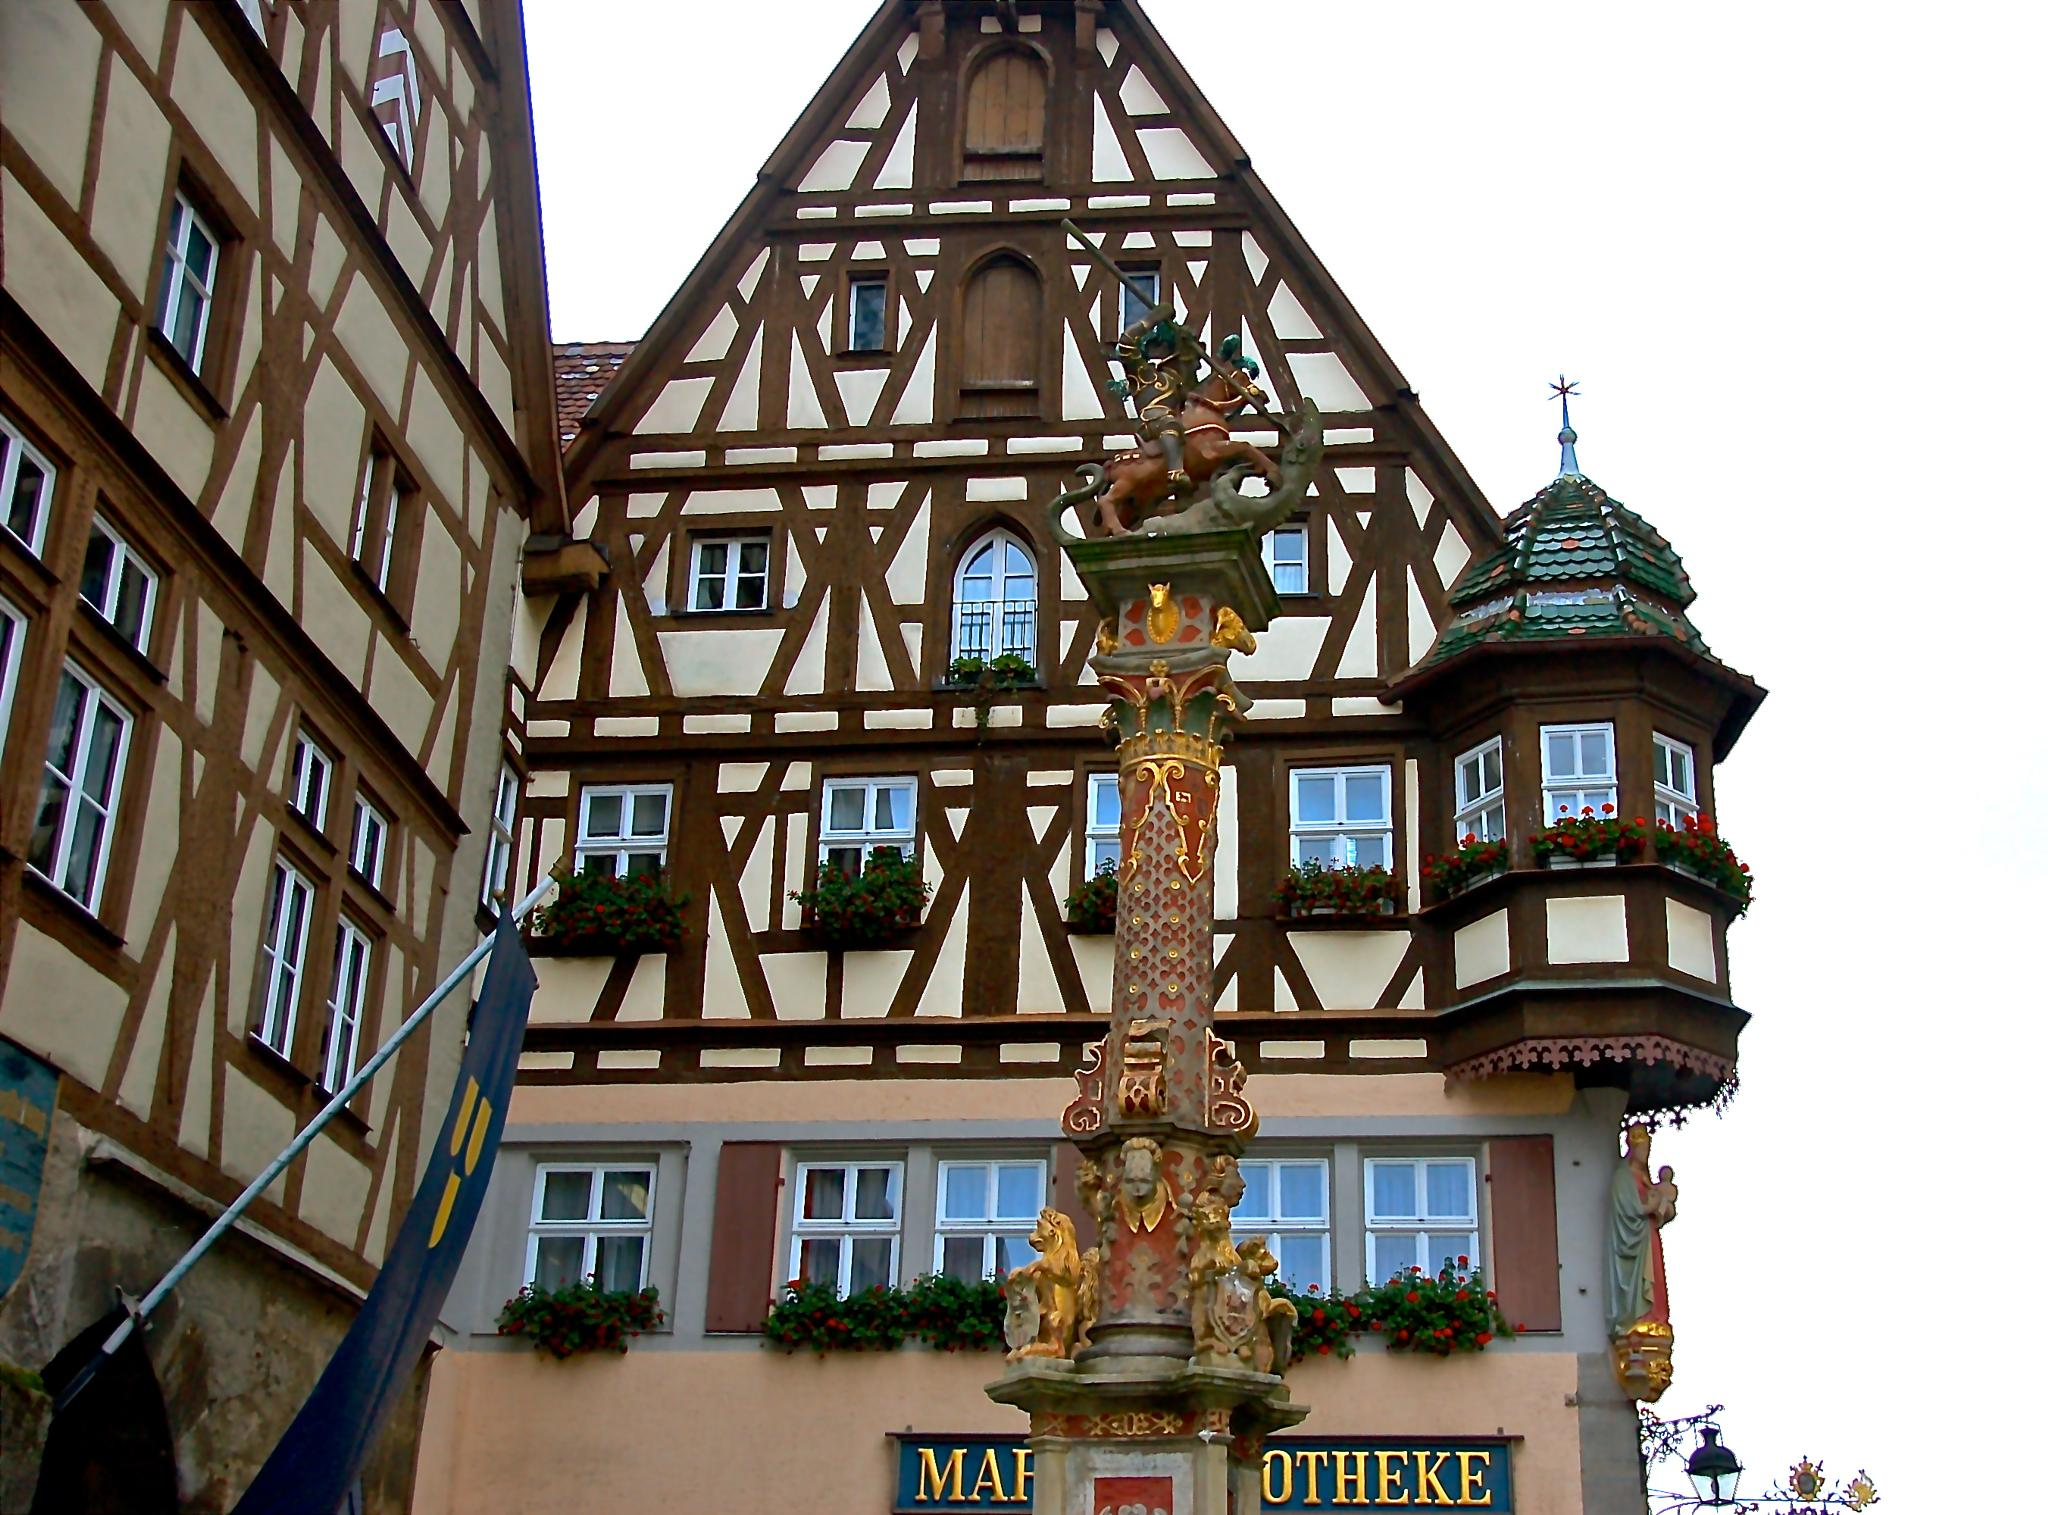 Rothenburg, Germany by Robert Ou